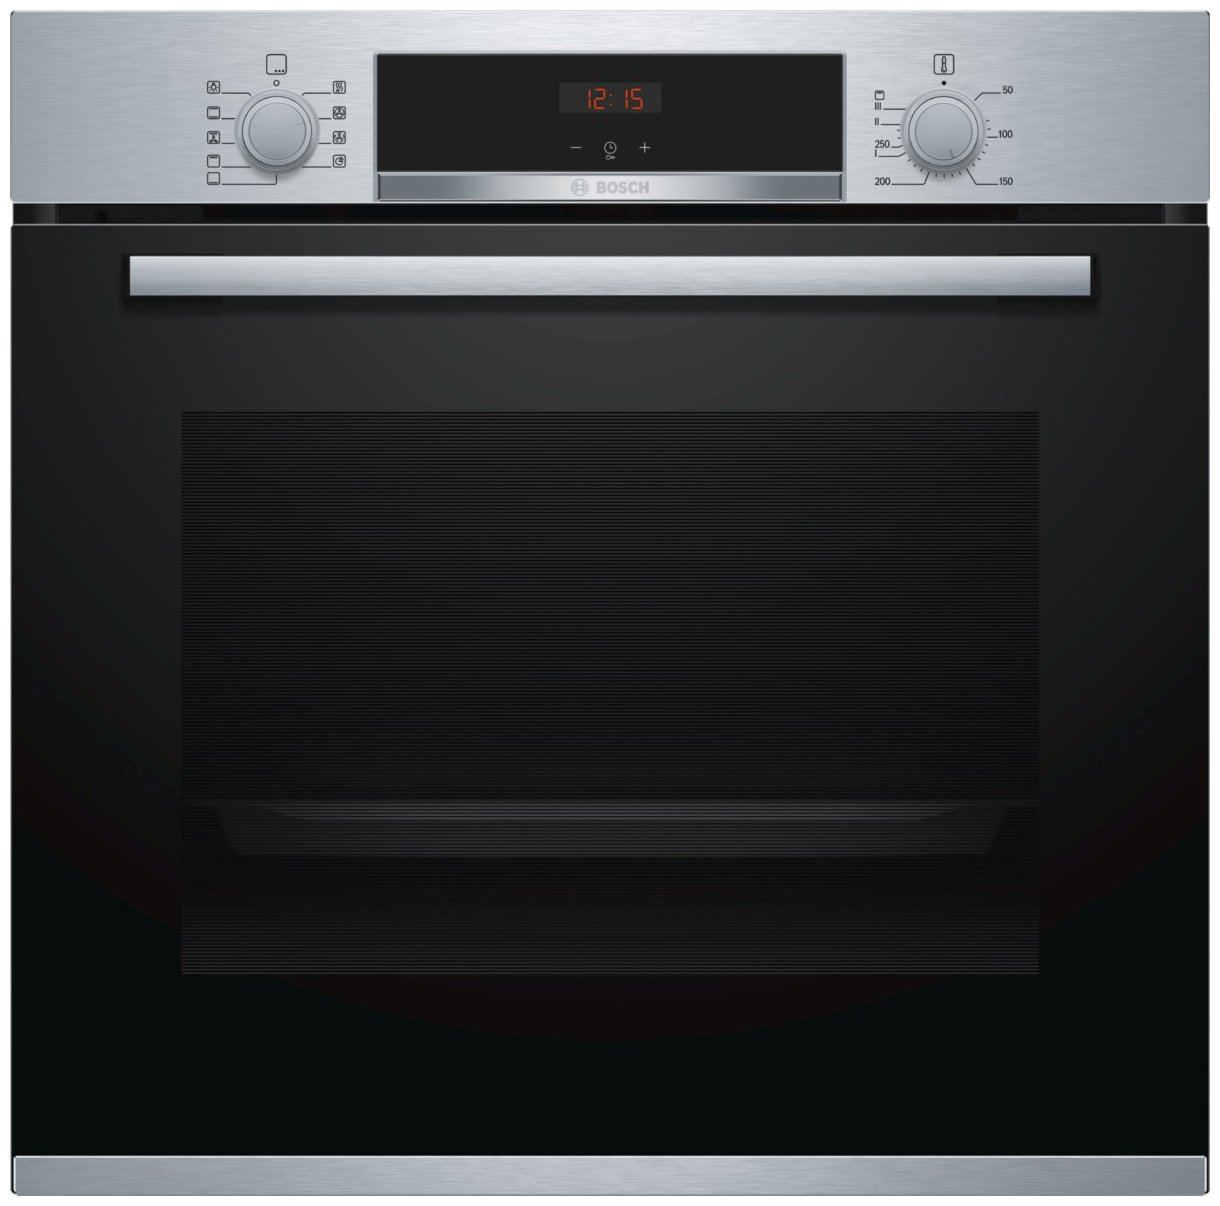 Bosch HBS534BS0B Built In Single Electric Oven - S/ Steel Best Price, Cheapest Prices